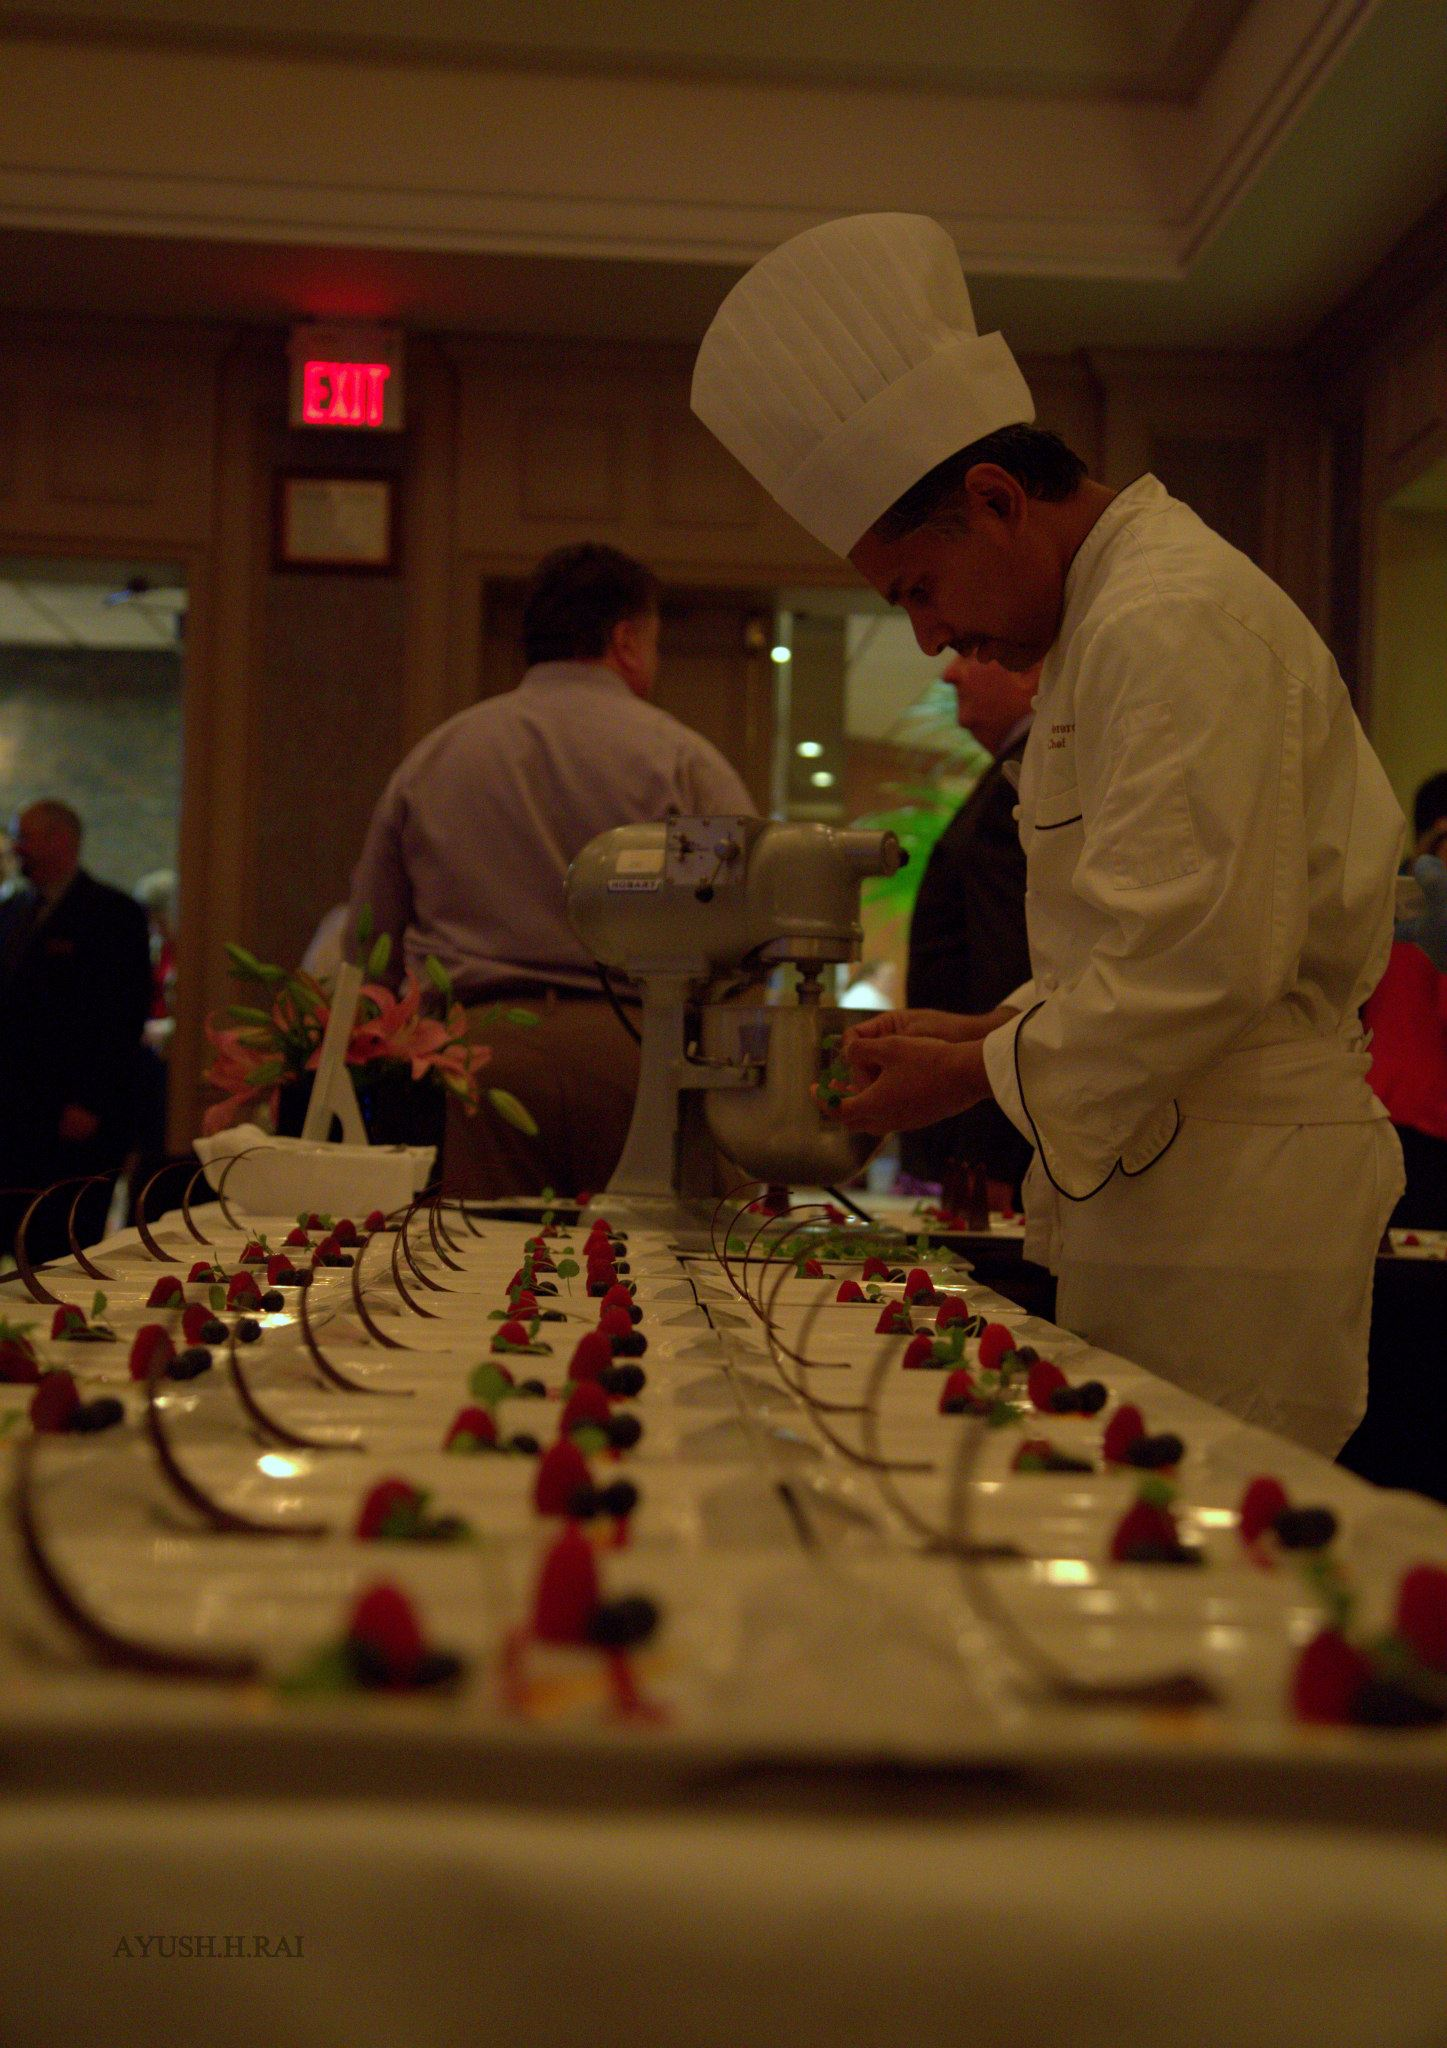 The evening is a fantastic interactive culinary experience featuring tasting stations hosted by some of the finest chefs and restaurants in the region. Each chef will be featuring their signature items as they are vying for the coveted